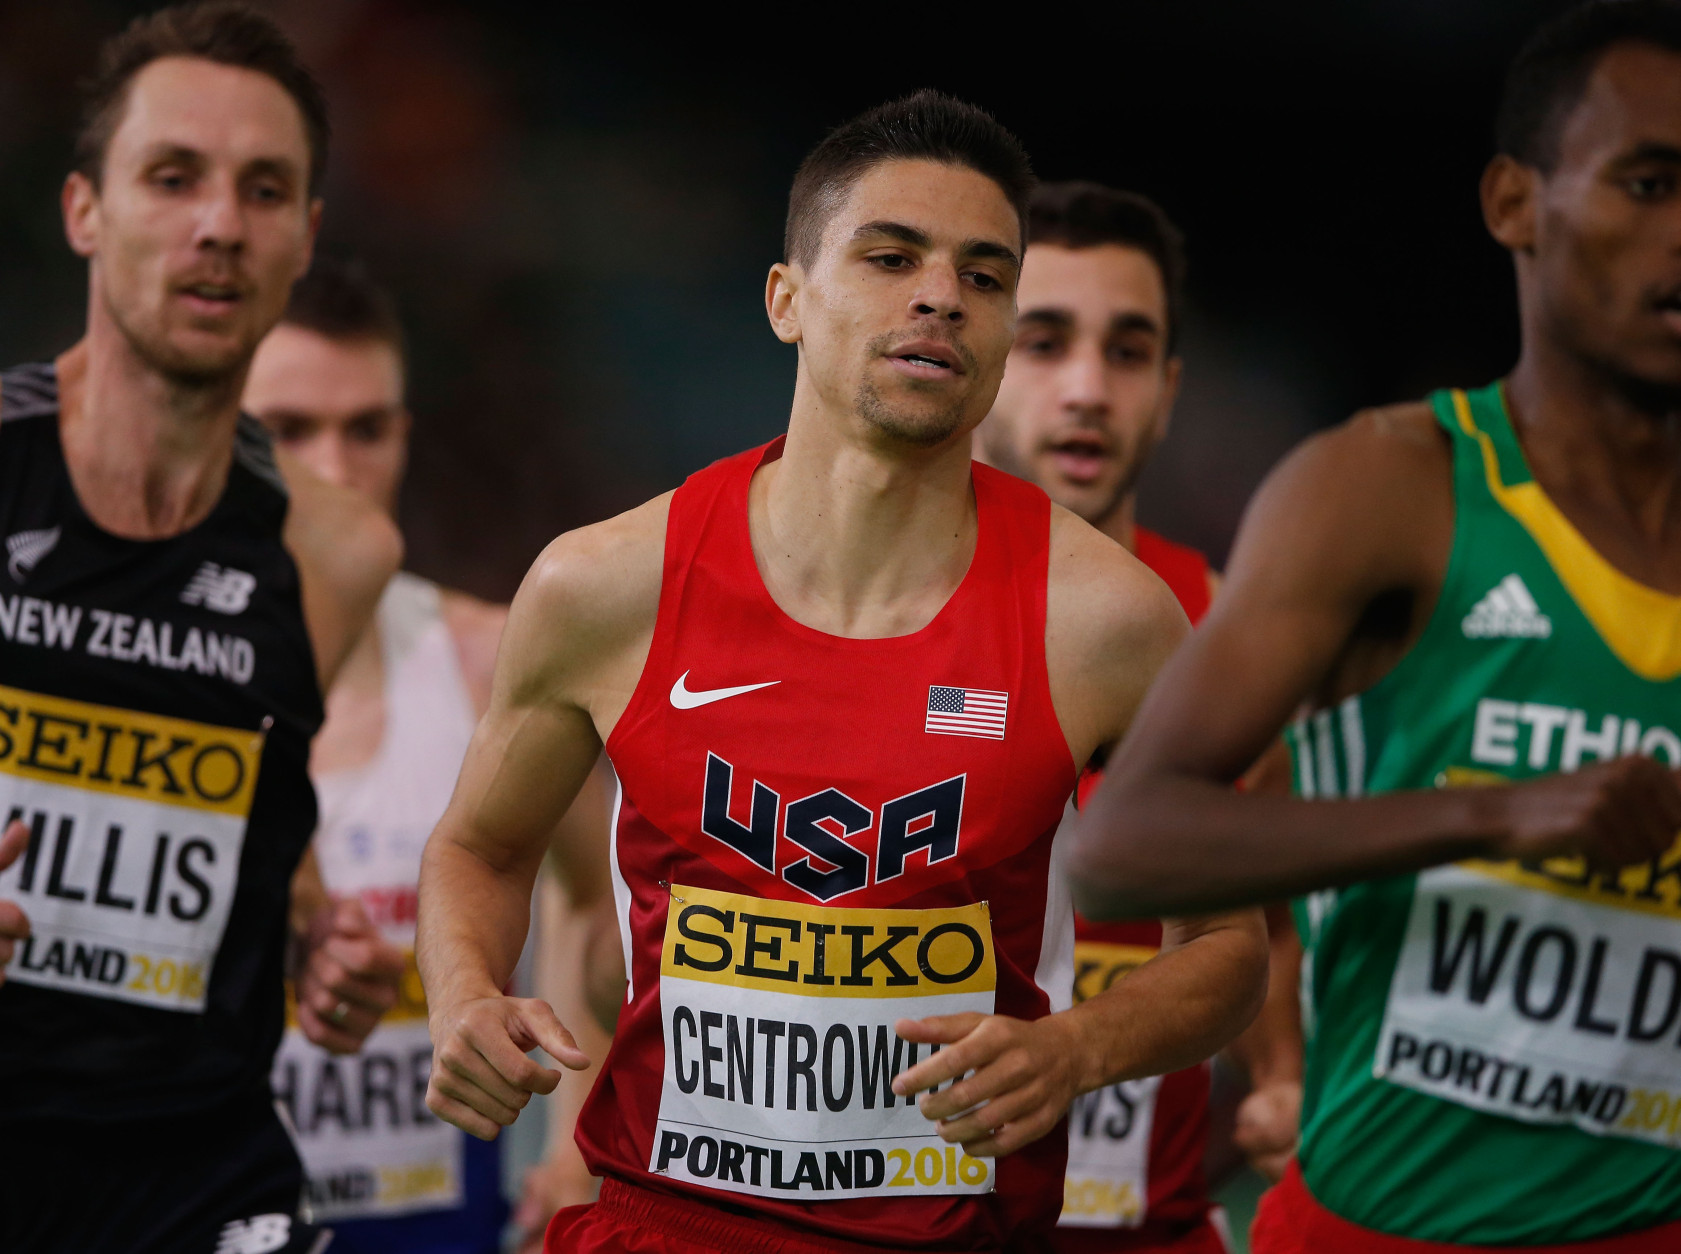 PORTLAND, OR - MARCH 20:  Matthew Centrowitz of the United States competes in the Men's 1500 Metres Final during day four of the IAAF World Indoor Championships at Oregon Convention Center on March 20, 2016 in Portland, Oregon.  (Photo by Christian Petersen/Getty Images for IAAF)